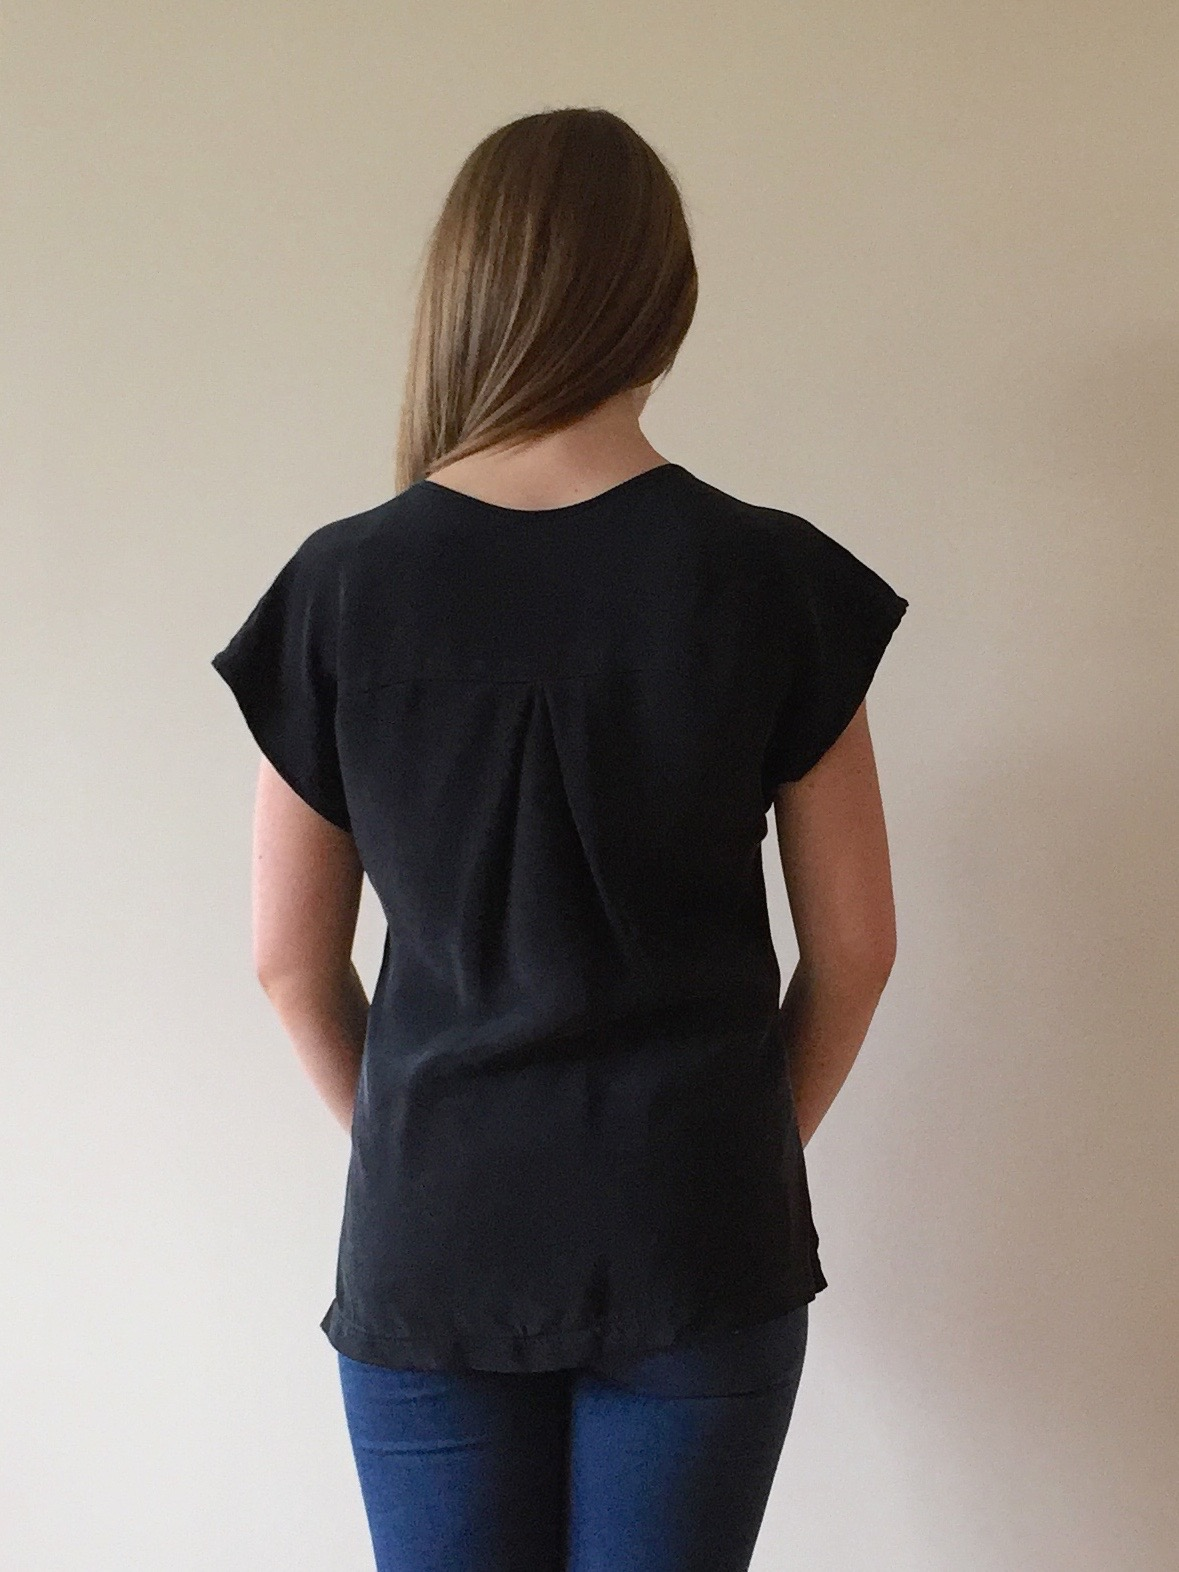 0e9c641f57f0a ... shoulder seam and how far the sleeve might stick out from the shoulder.  I also removed 1 2